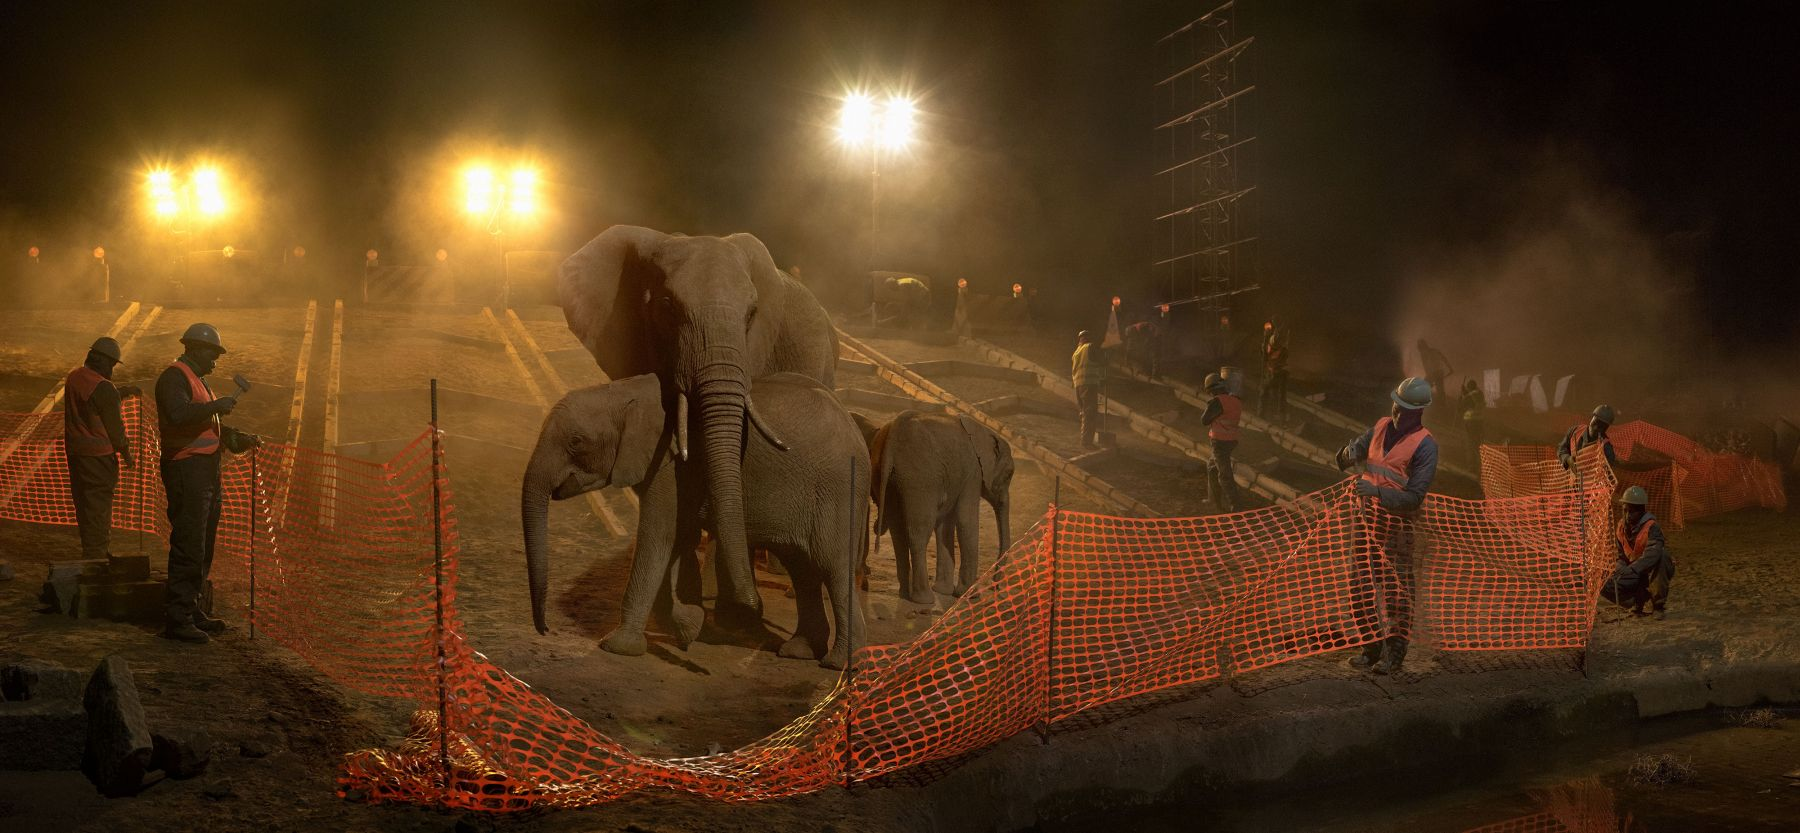 nick brandt, highway construction with elephants, workers & fence